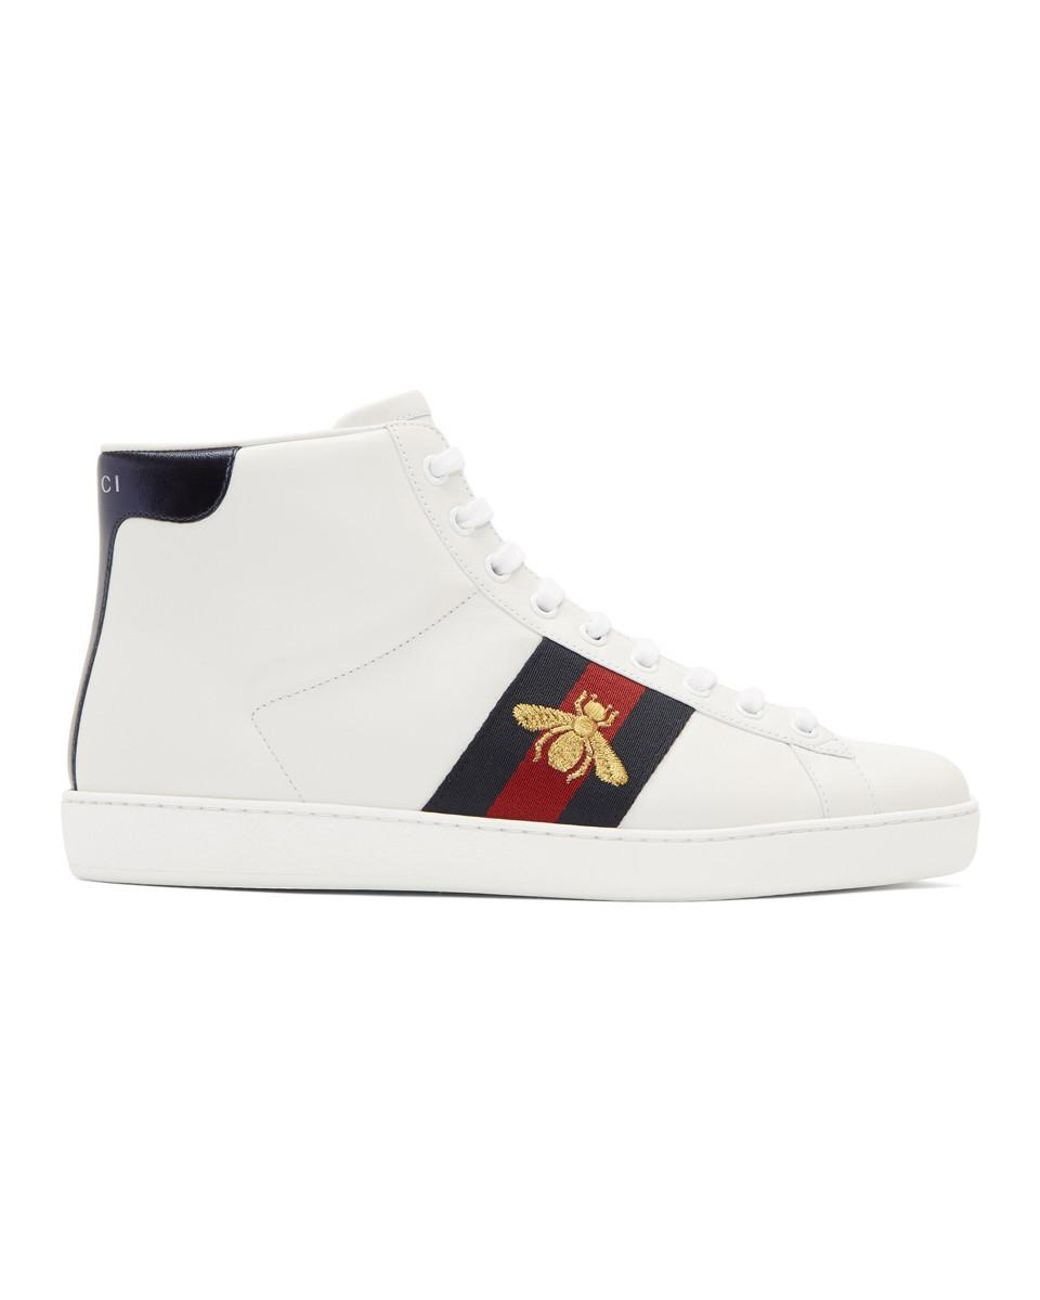 5f38be01d6e Gucci White Bee New Ace High-top Sneakers in White for Men - Lyst